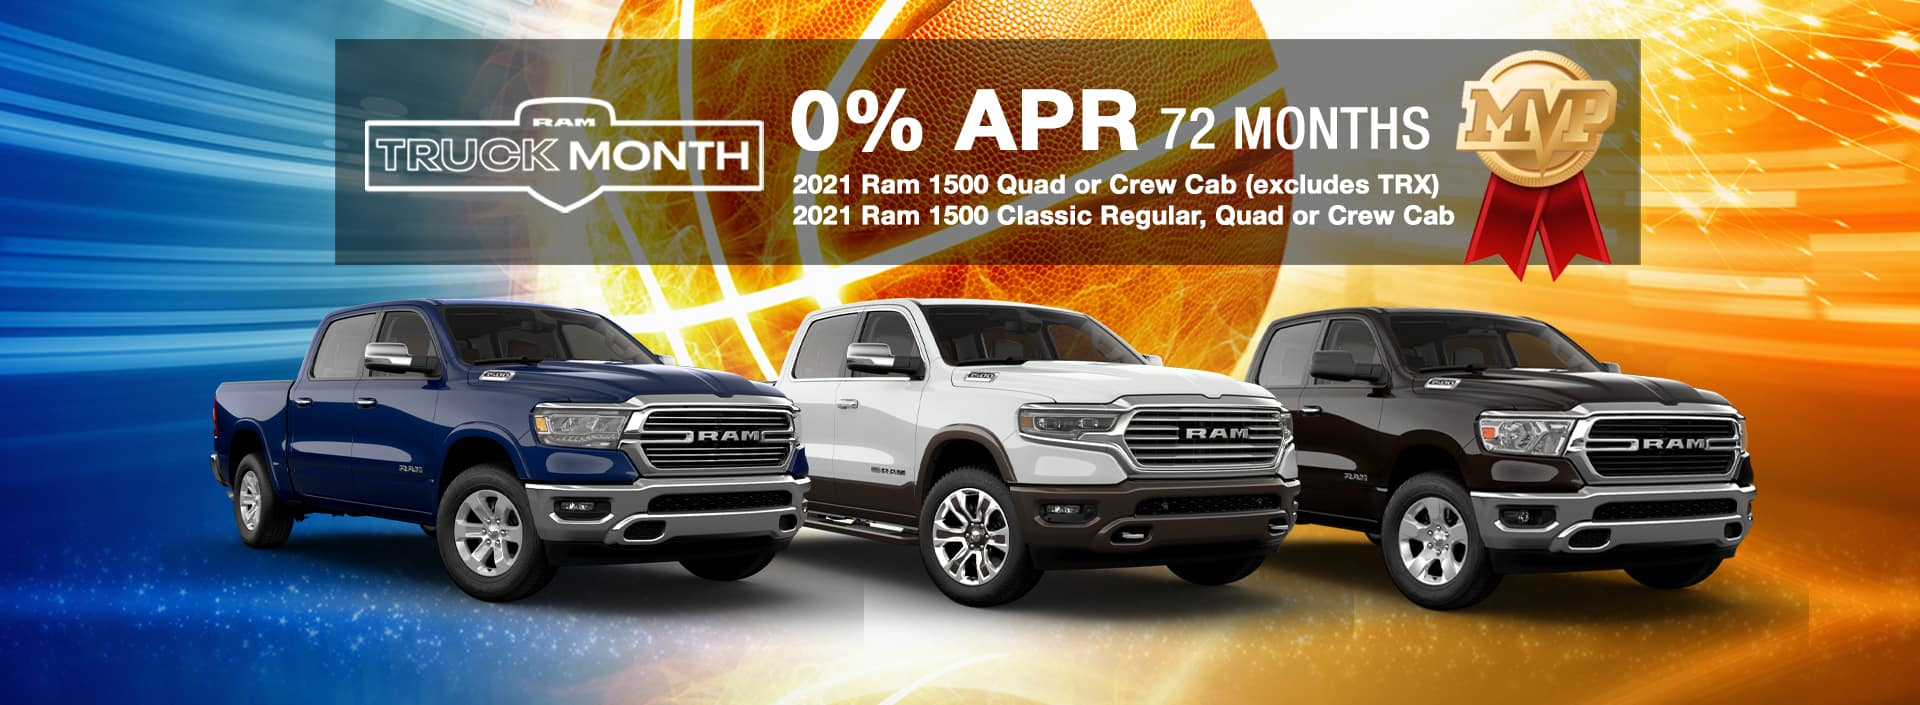 parks-truck-month-march